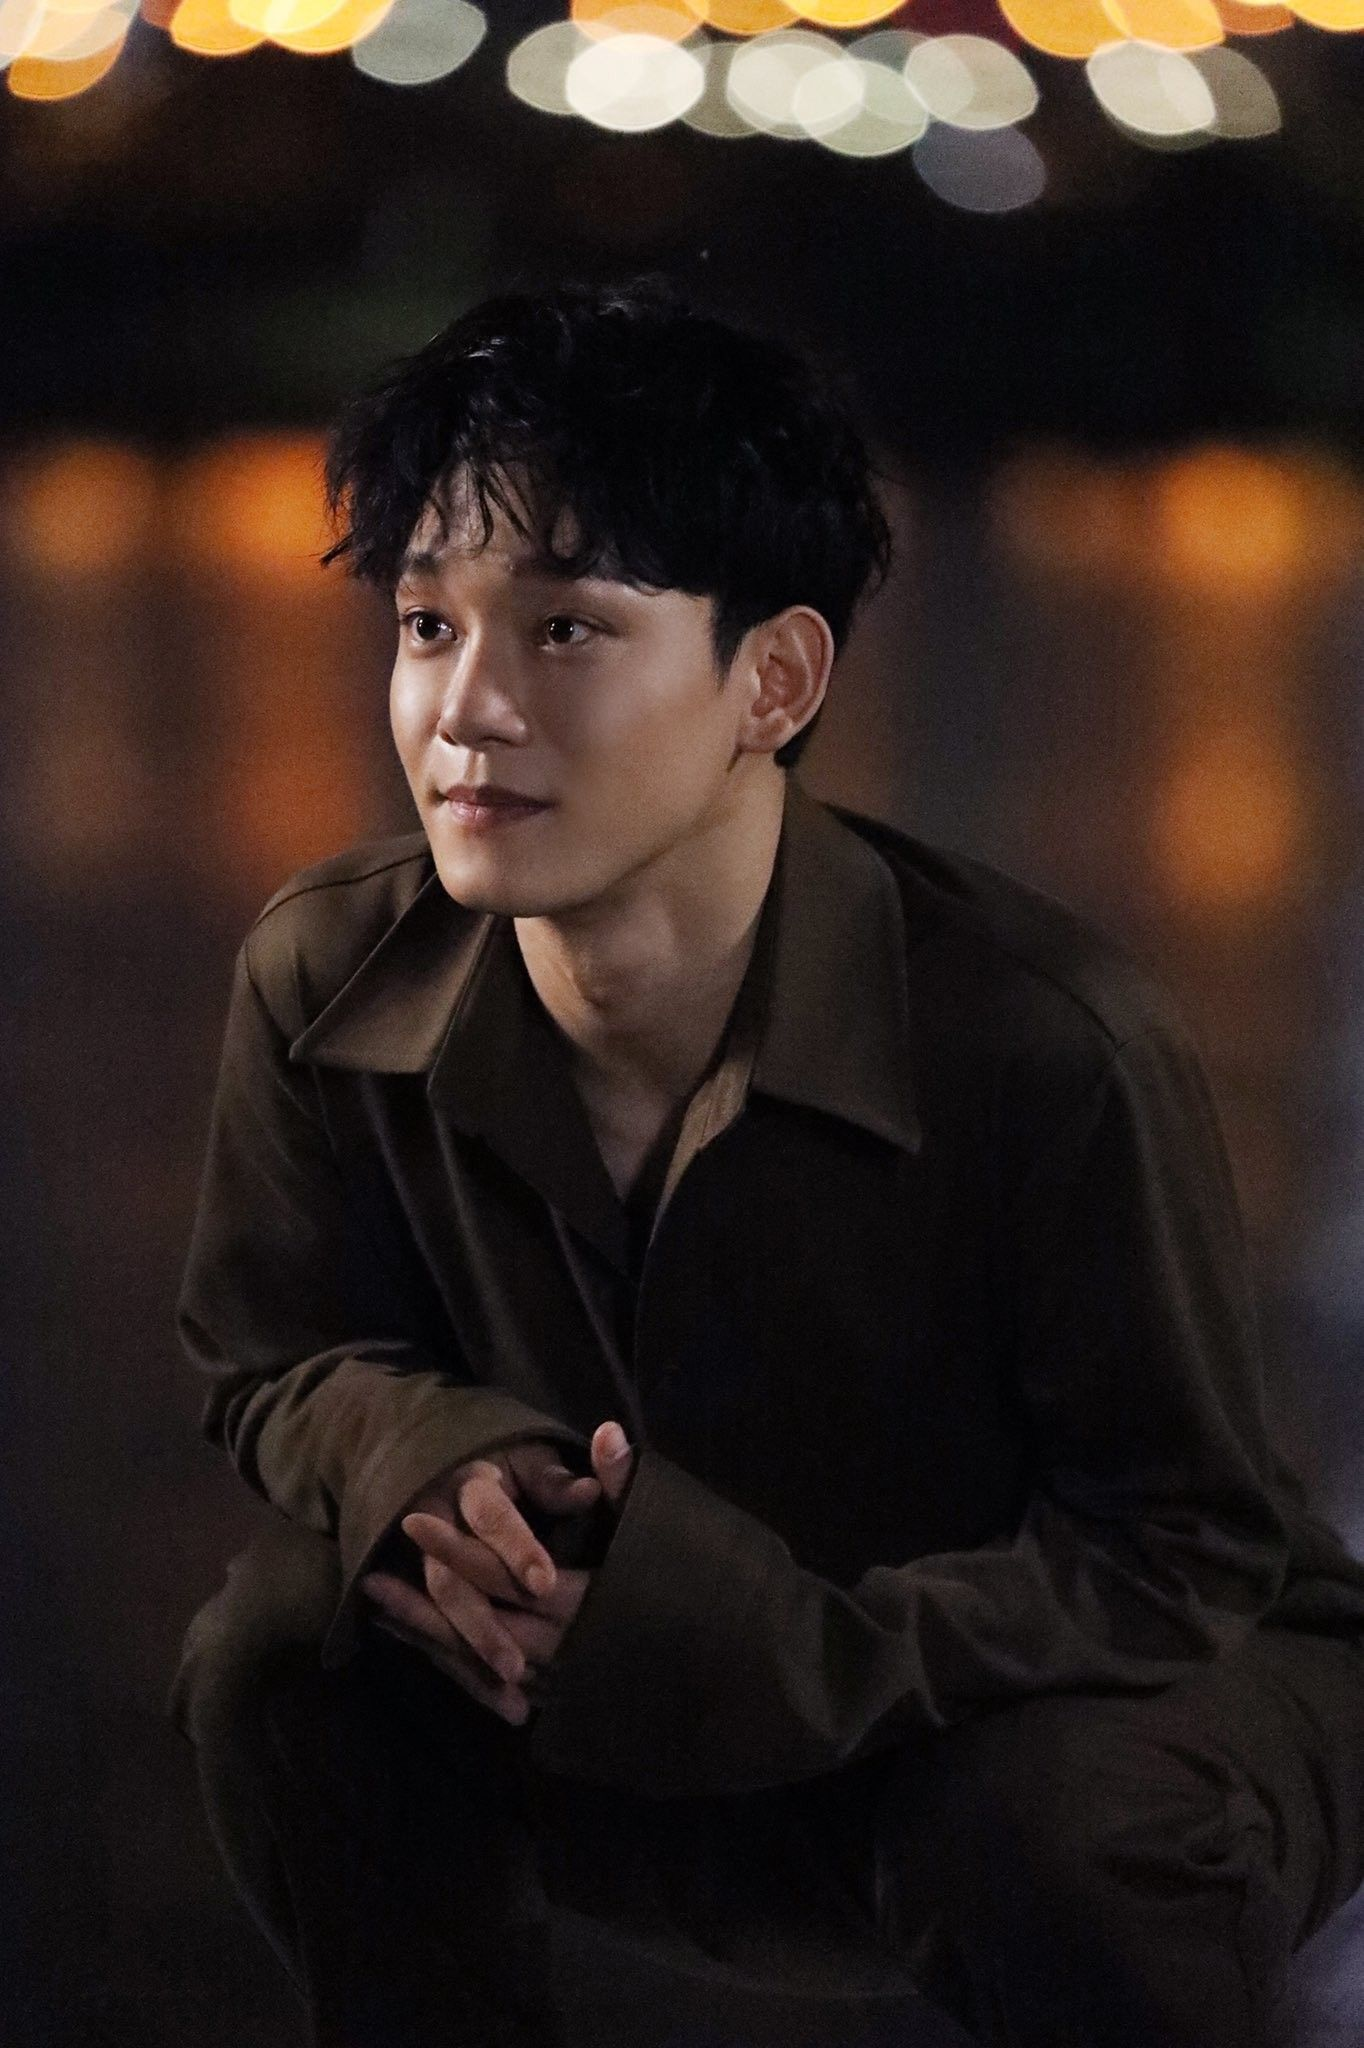 Chen at Shall We? MV Behind The Scenes